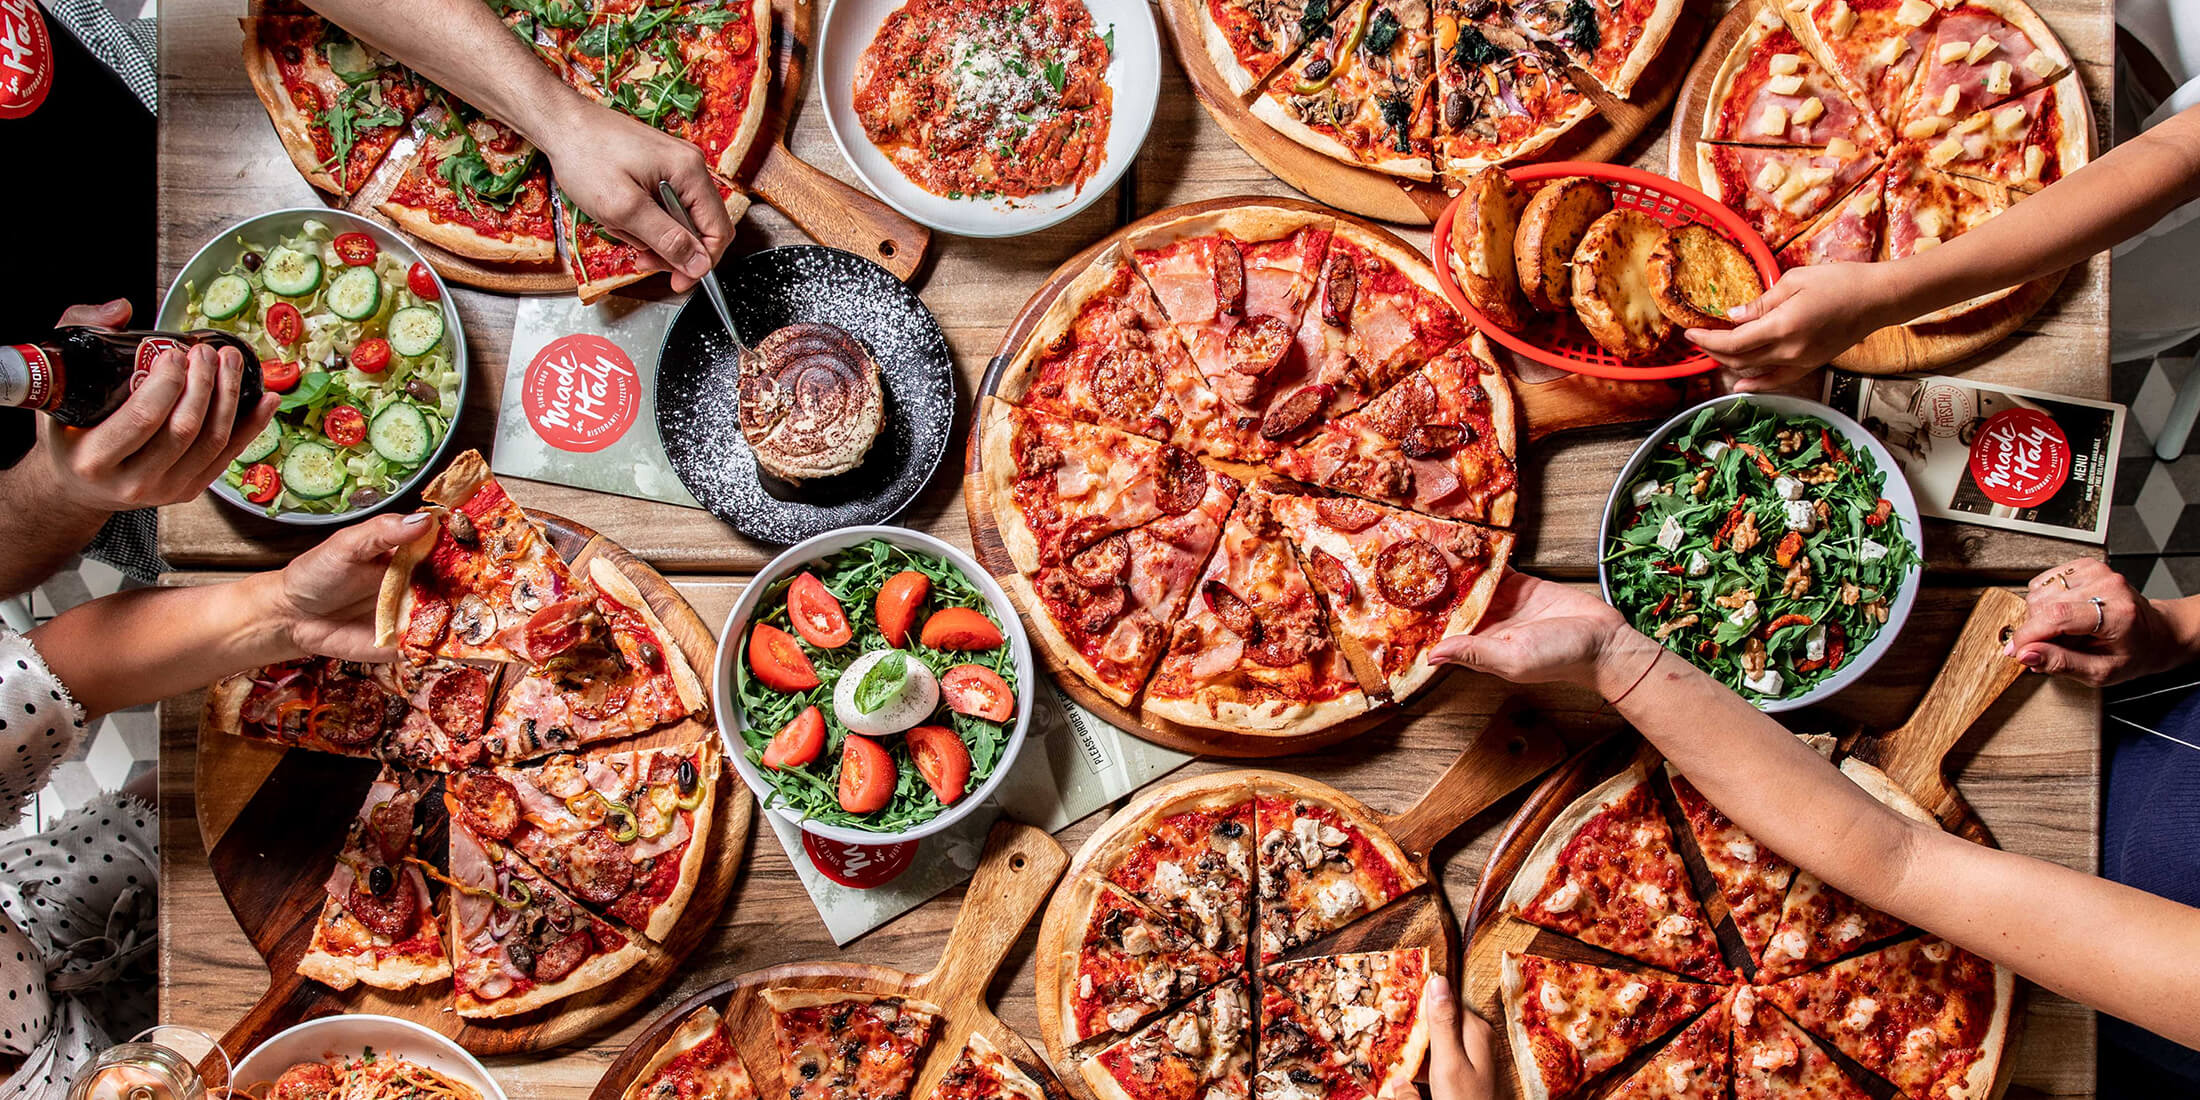 We deliver Italian pizza and pasta in Darling Harbour